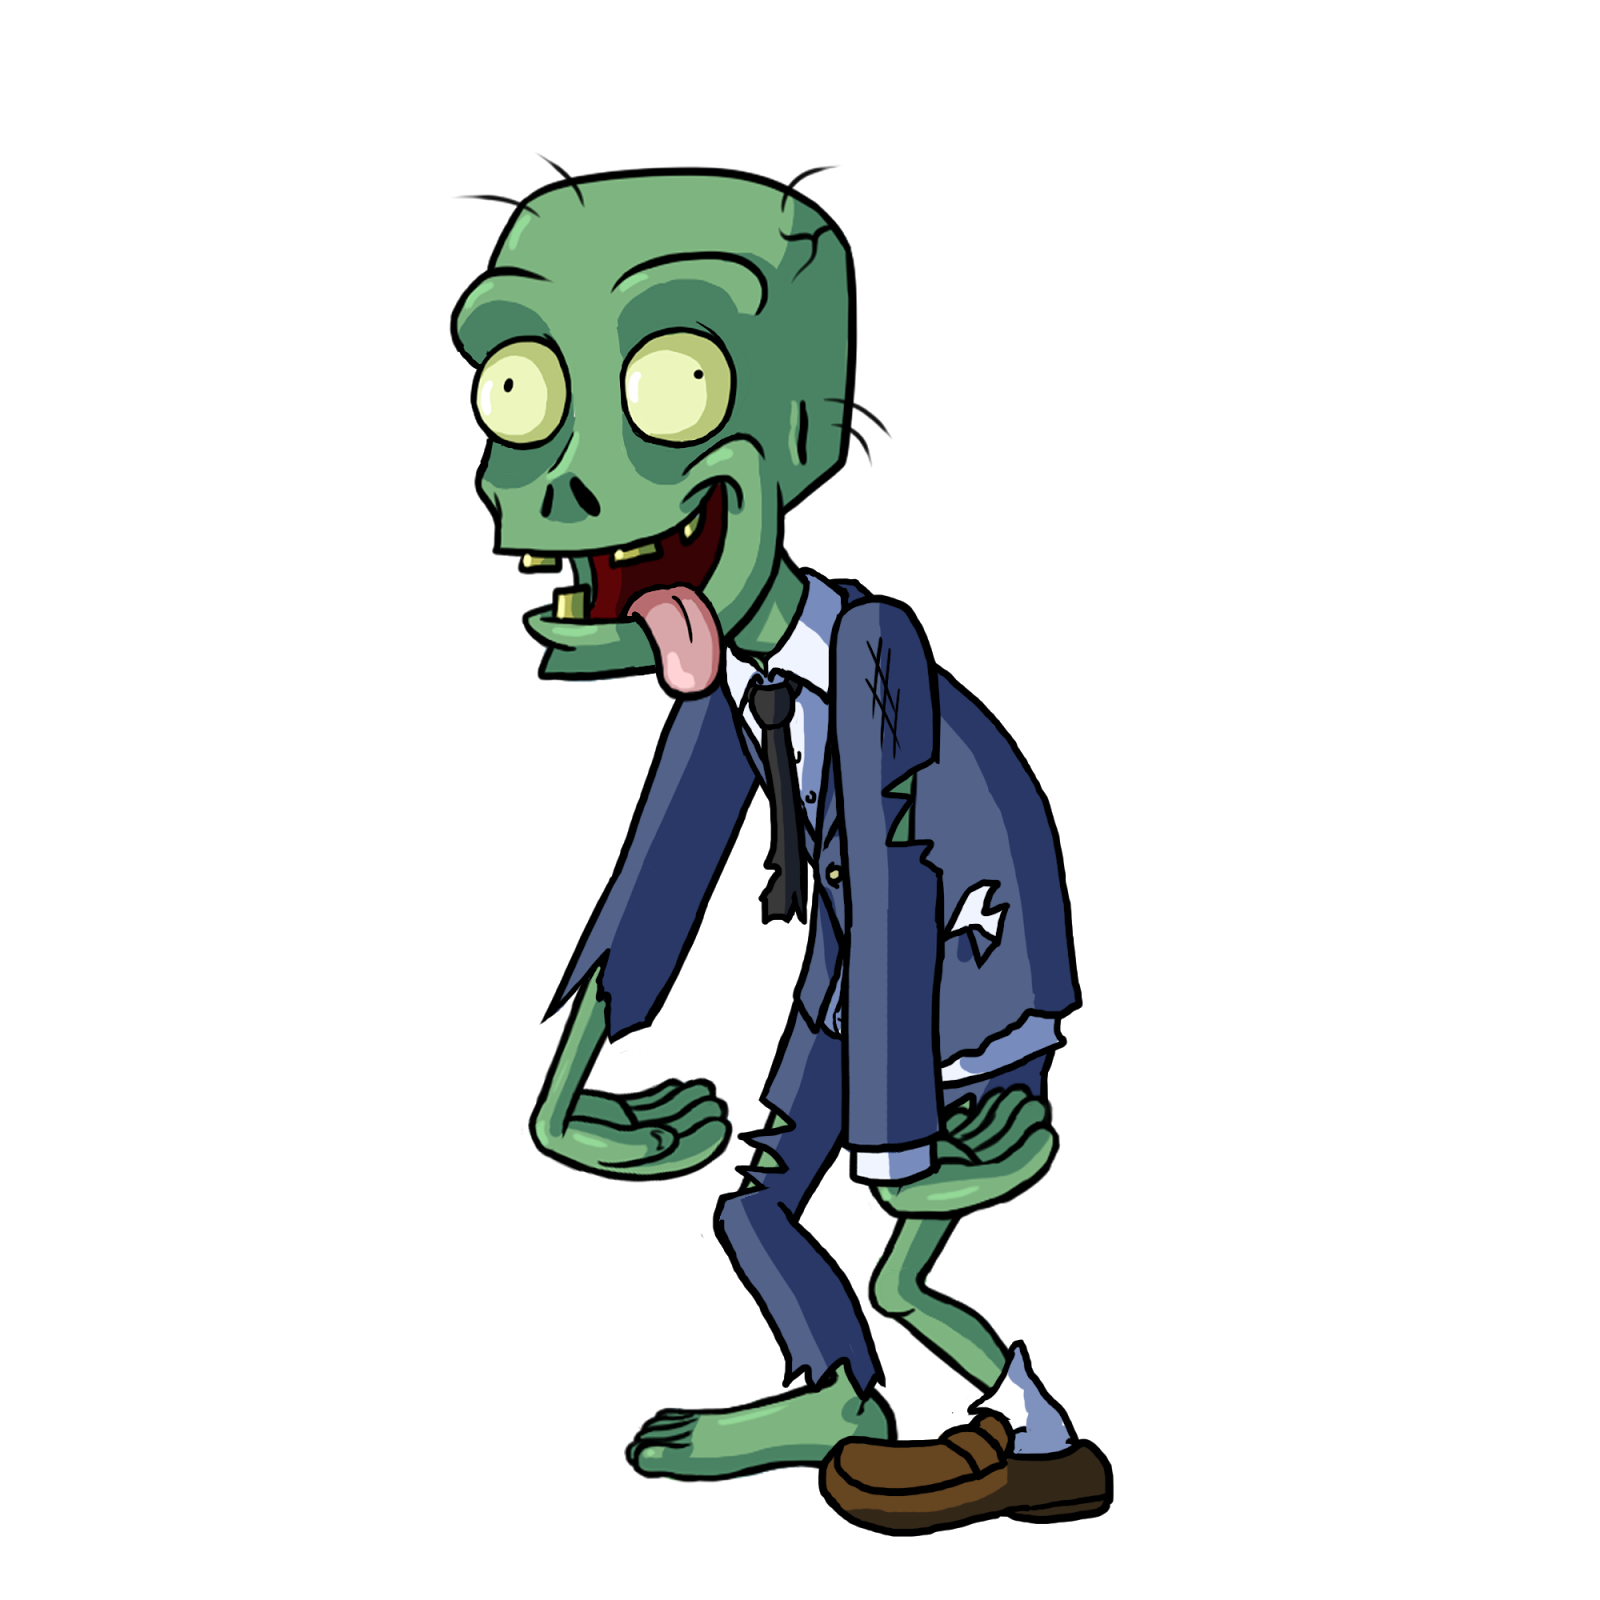 Zombie clipart carton. Png image purepng free